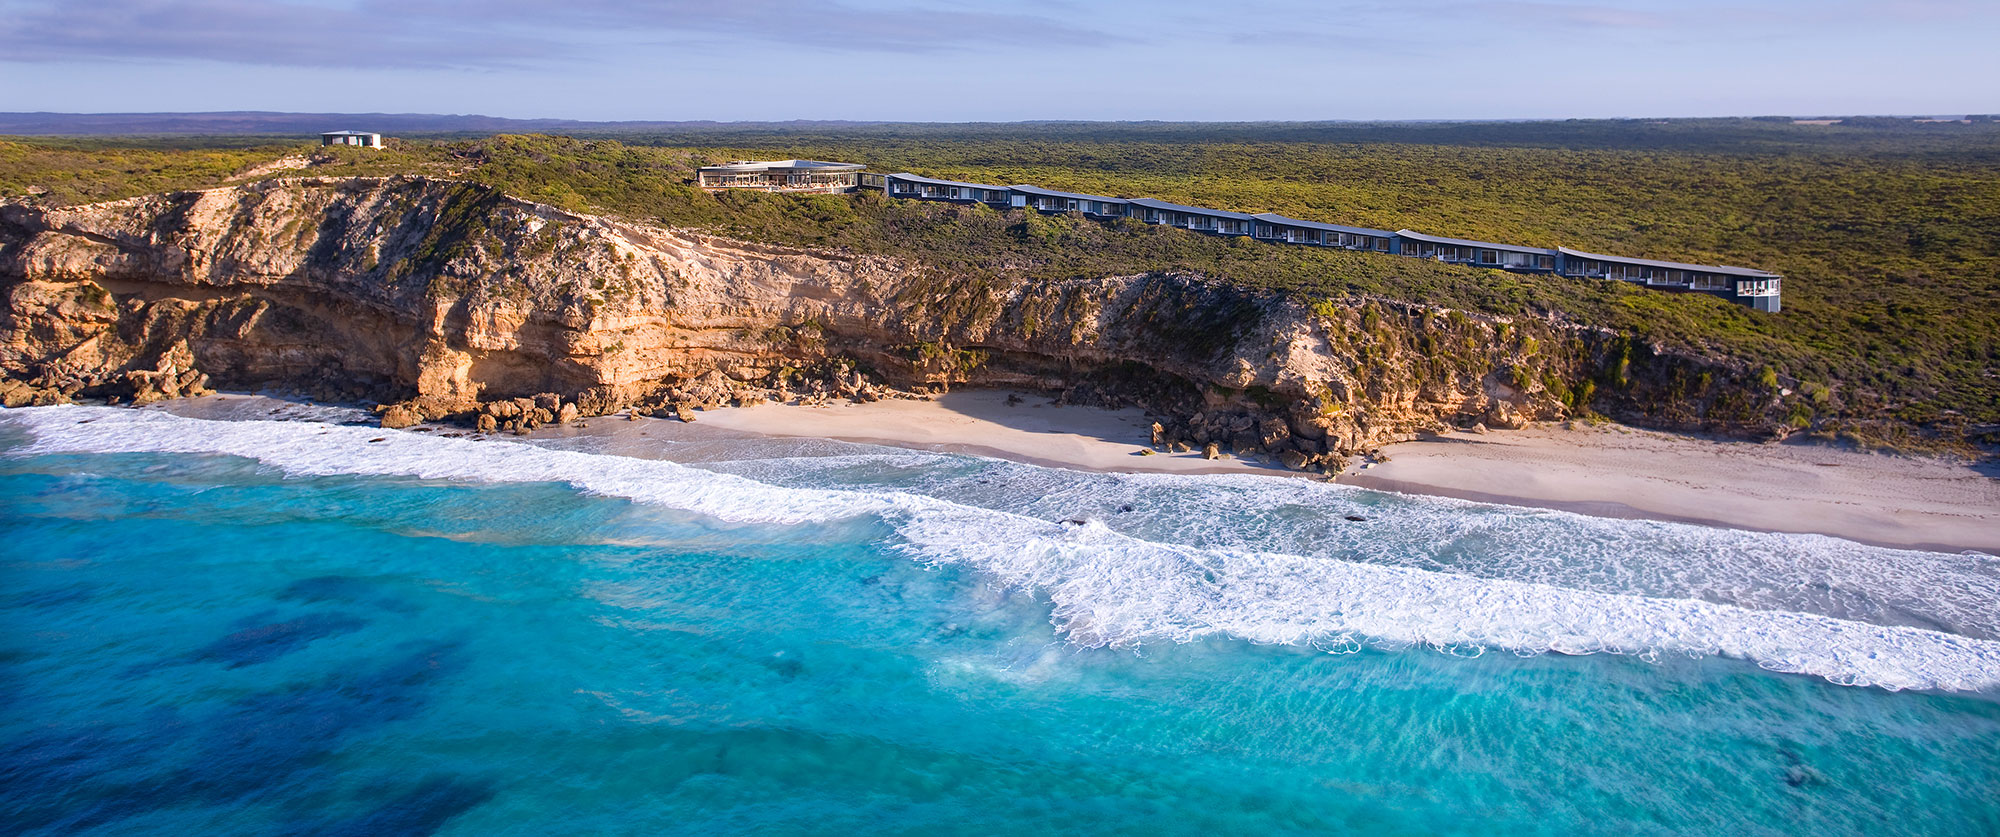 Australia Luxury Lodges - Southern Ocean Lodge